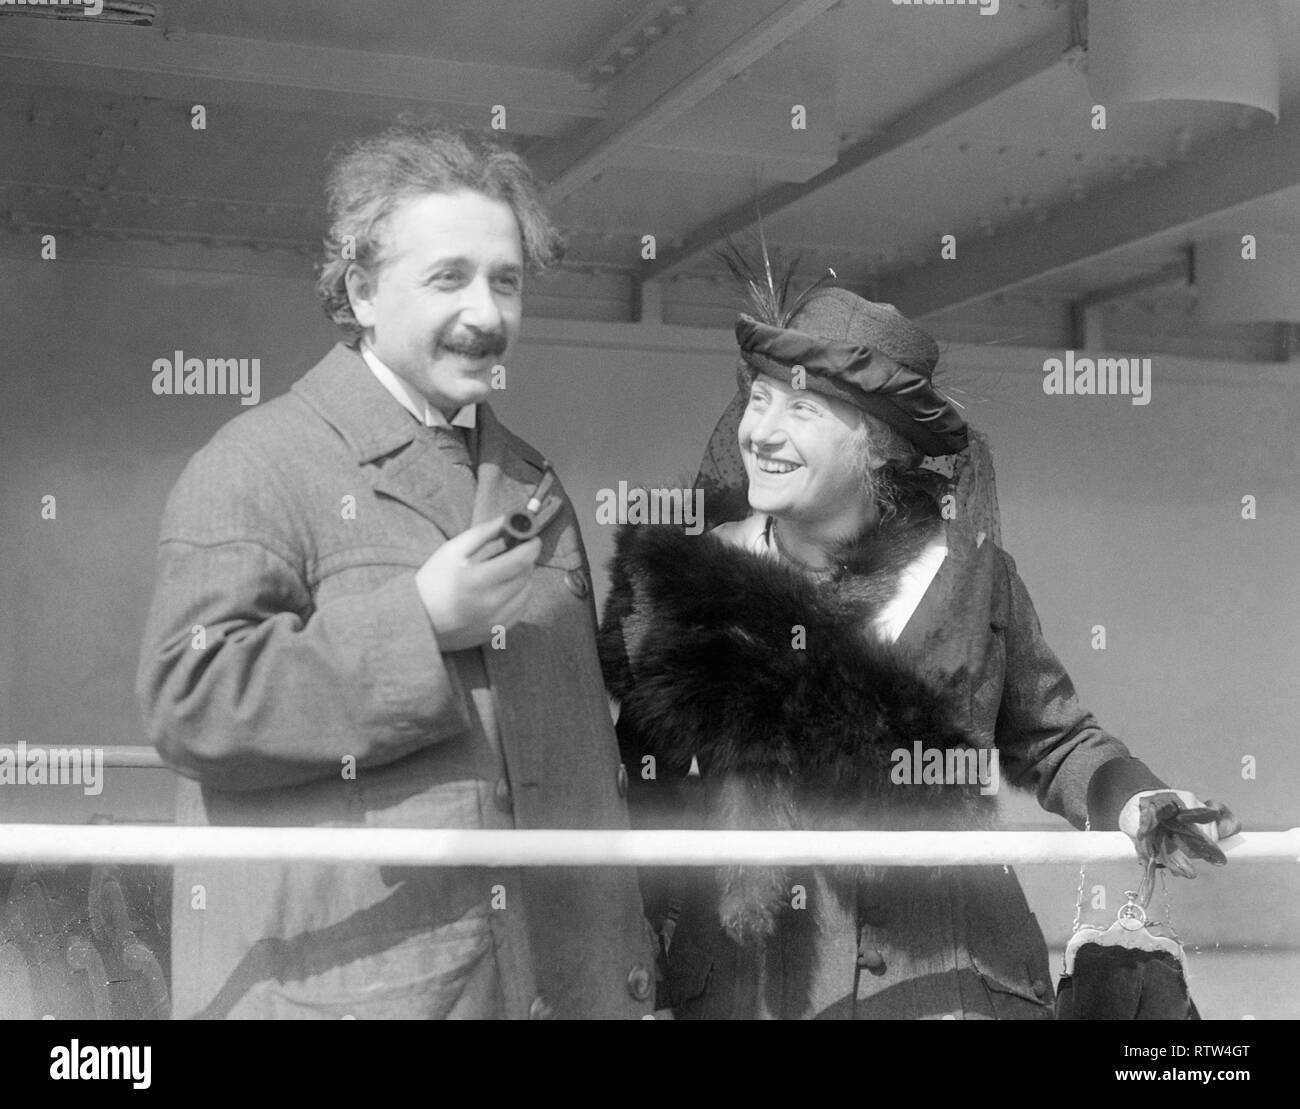 Albert einstein and his second wife elsa einstein on board the ss rotterdam arriving in new york - Stock Image